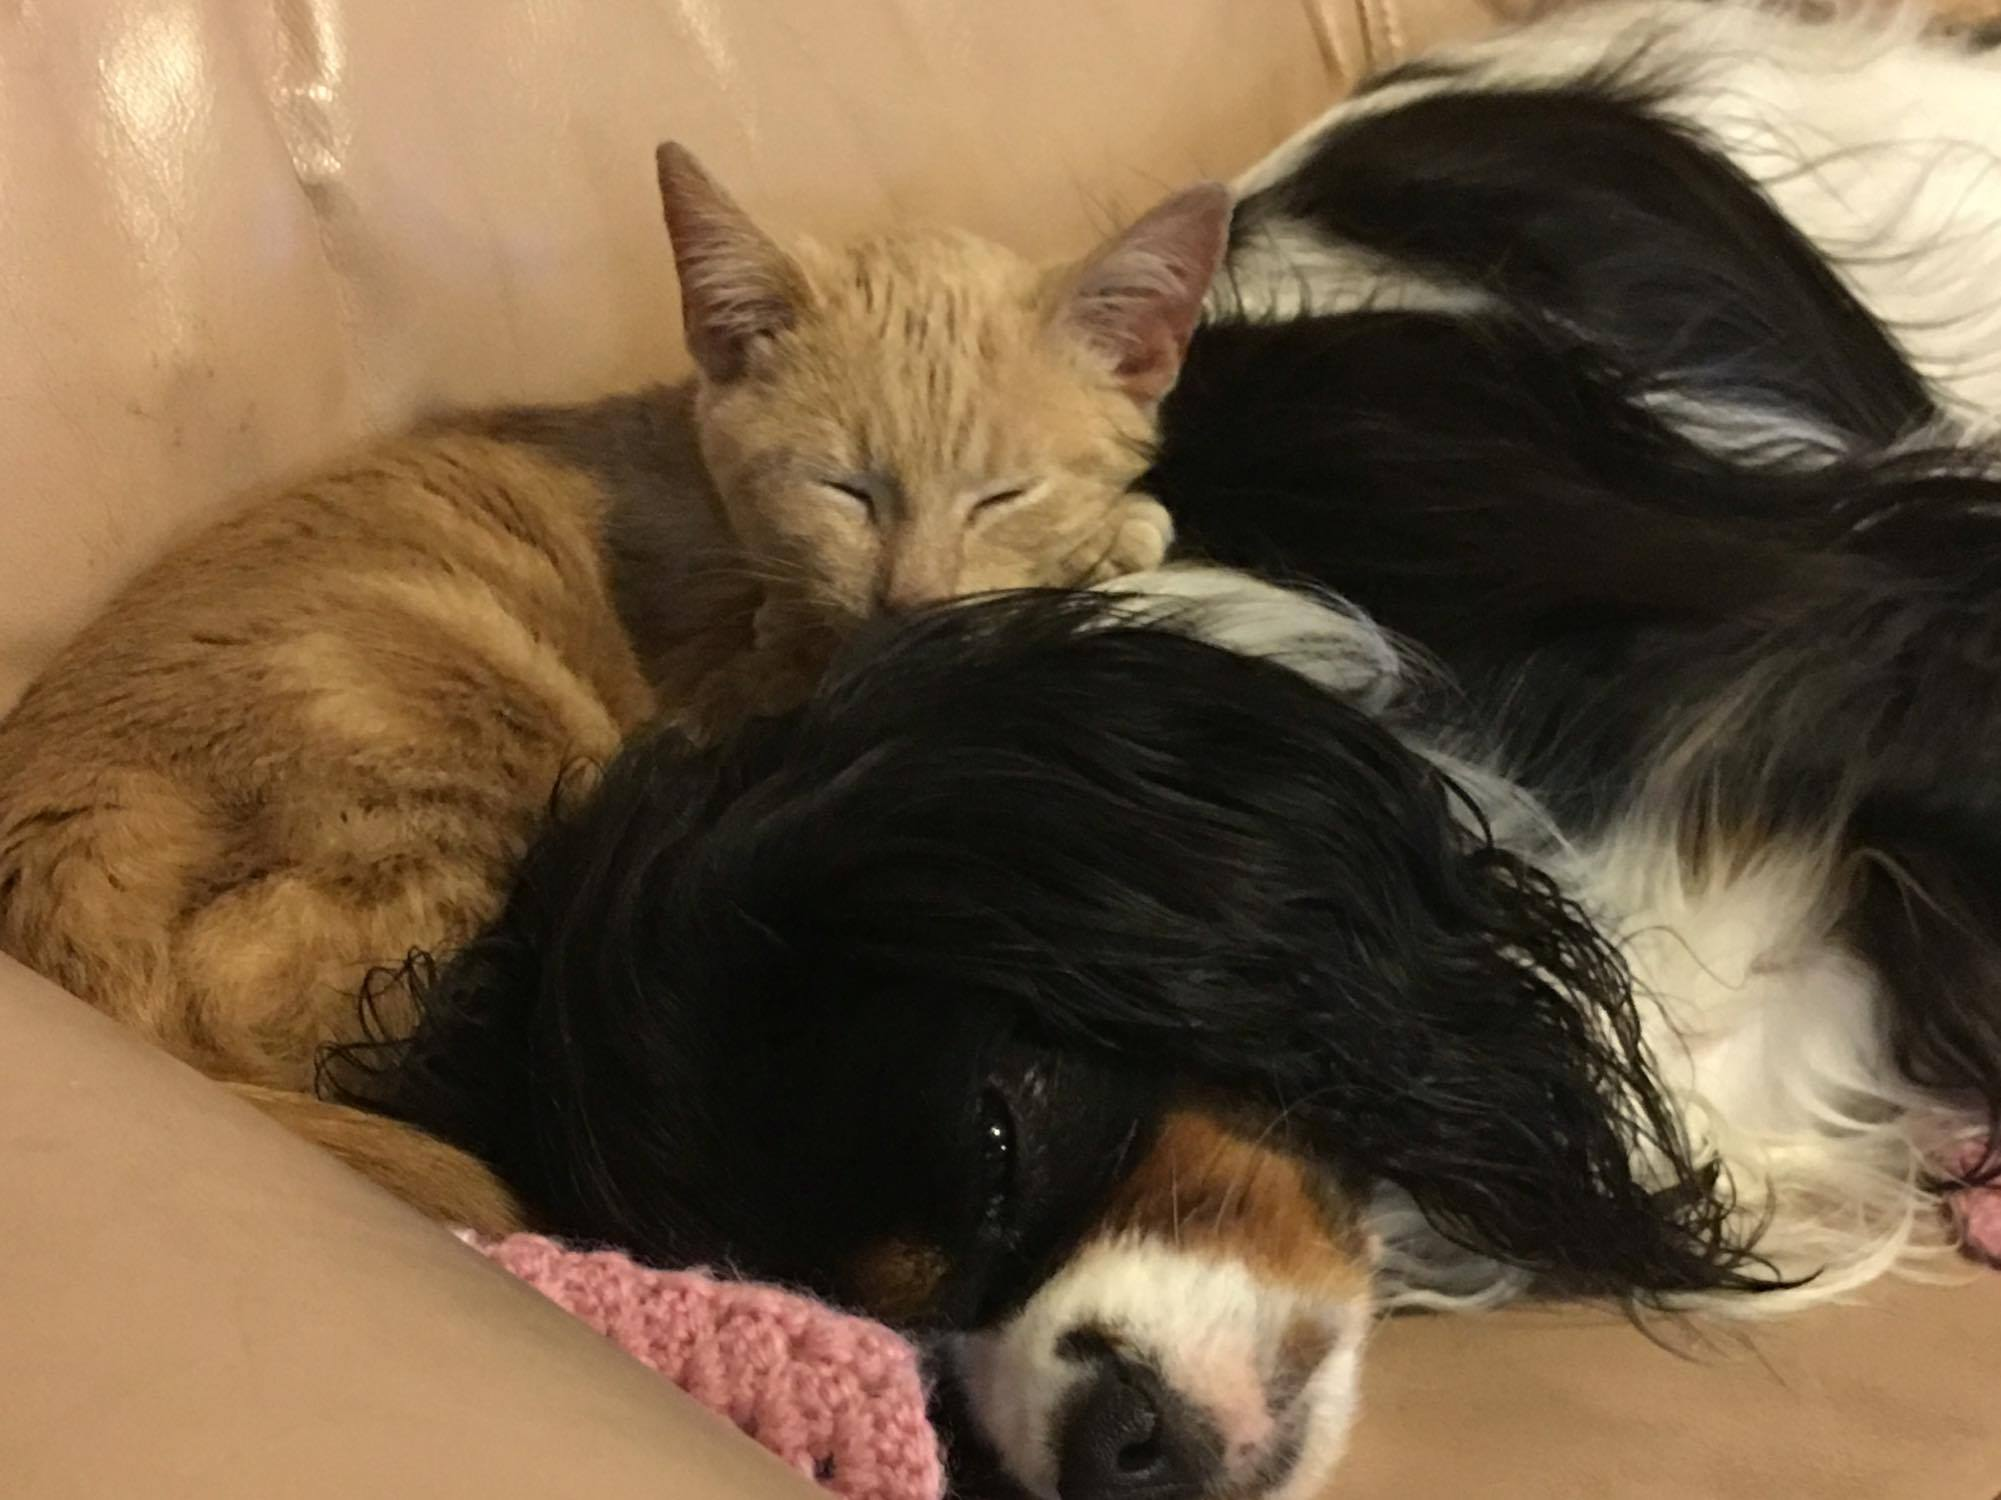 Dog and cat sleeping on a couch